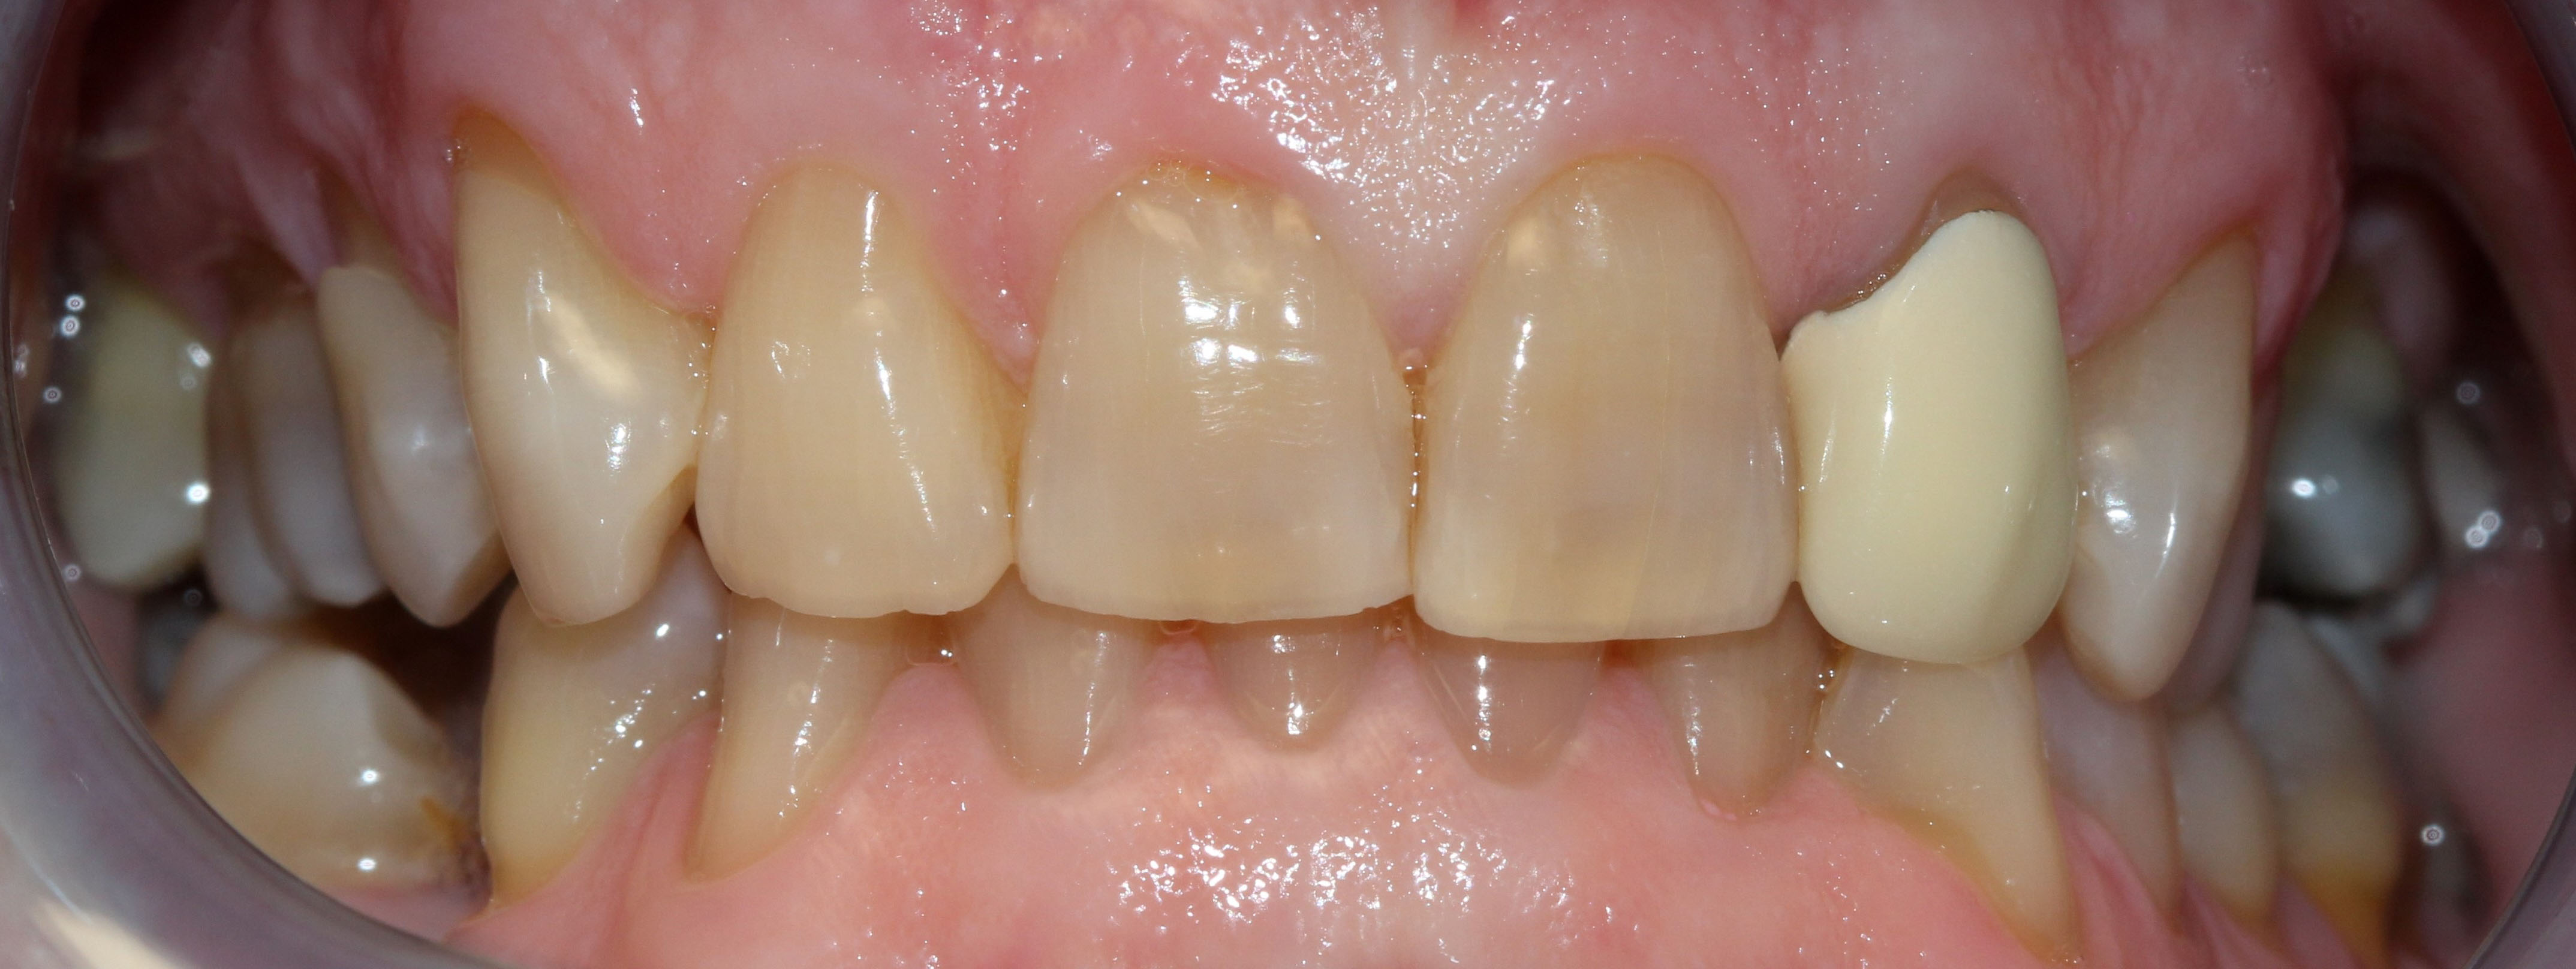 Before picture of teeth, looking slightly discolored.